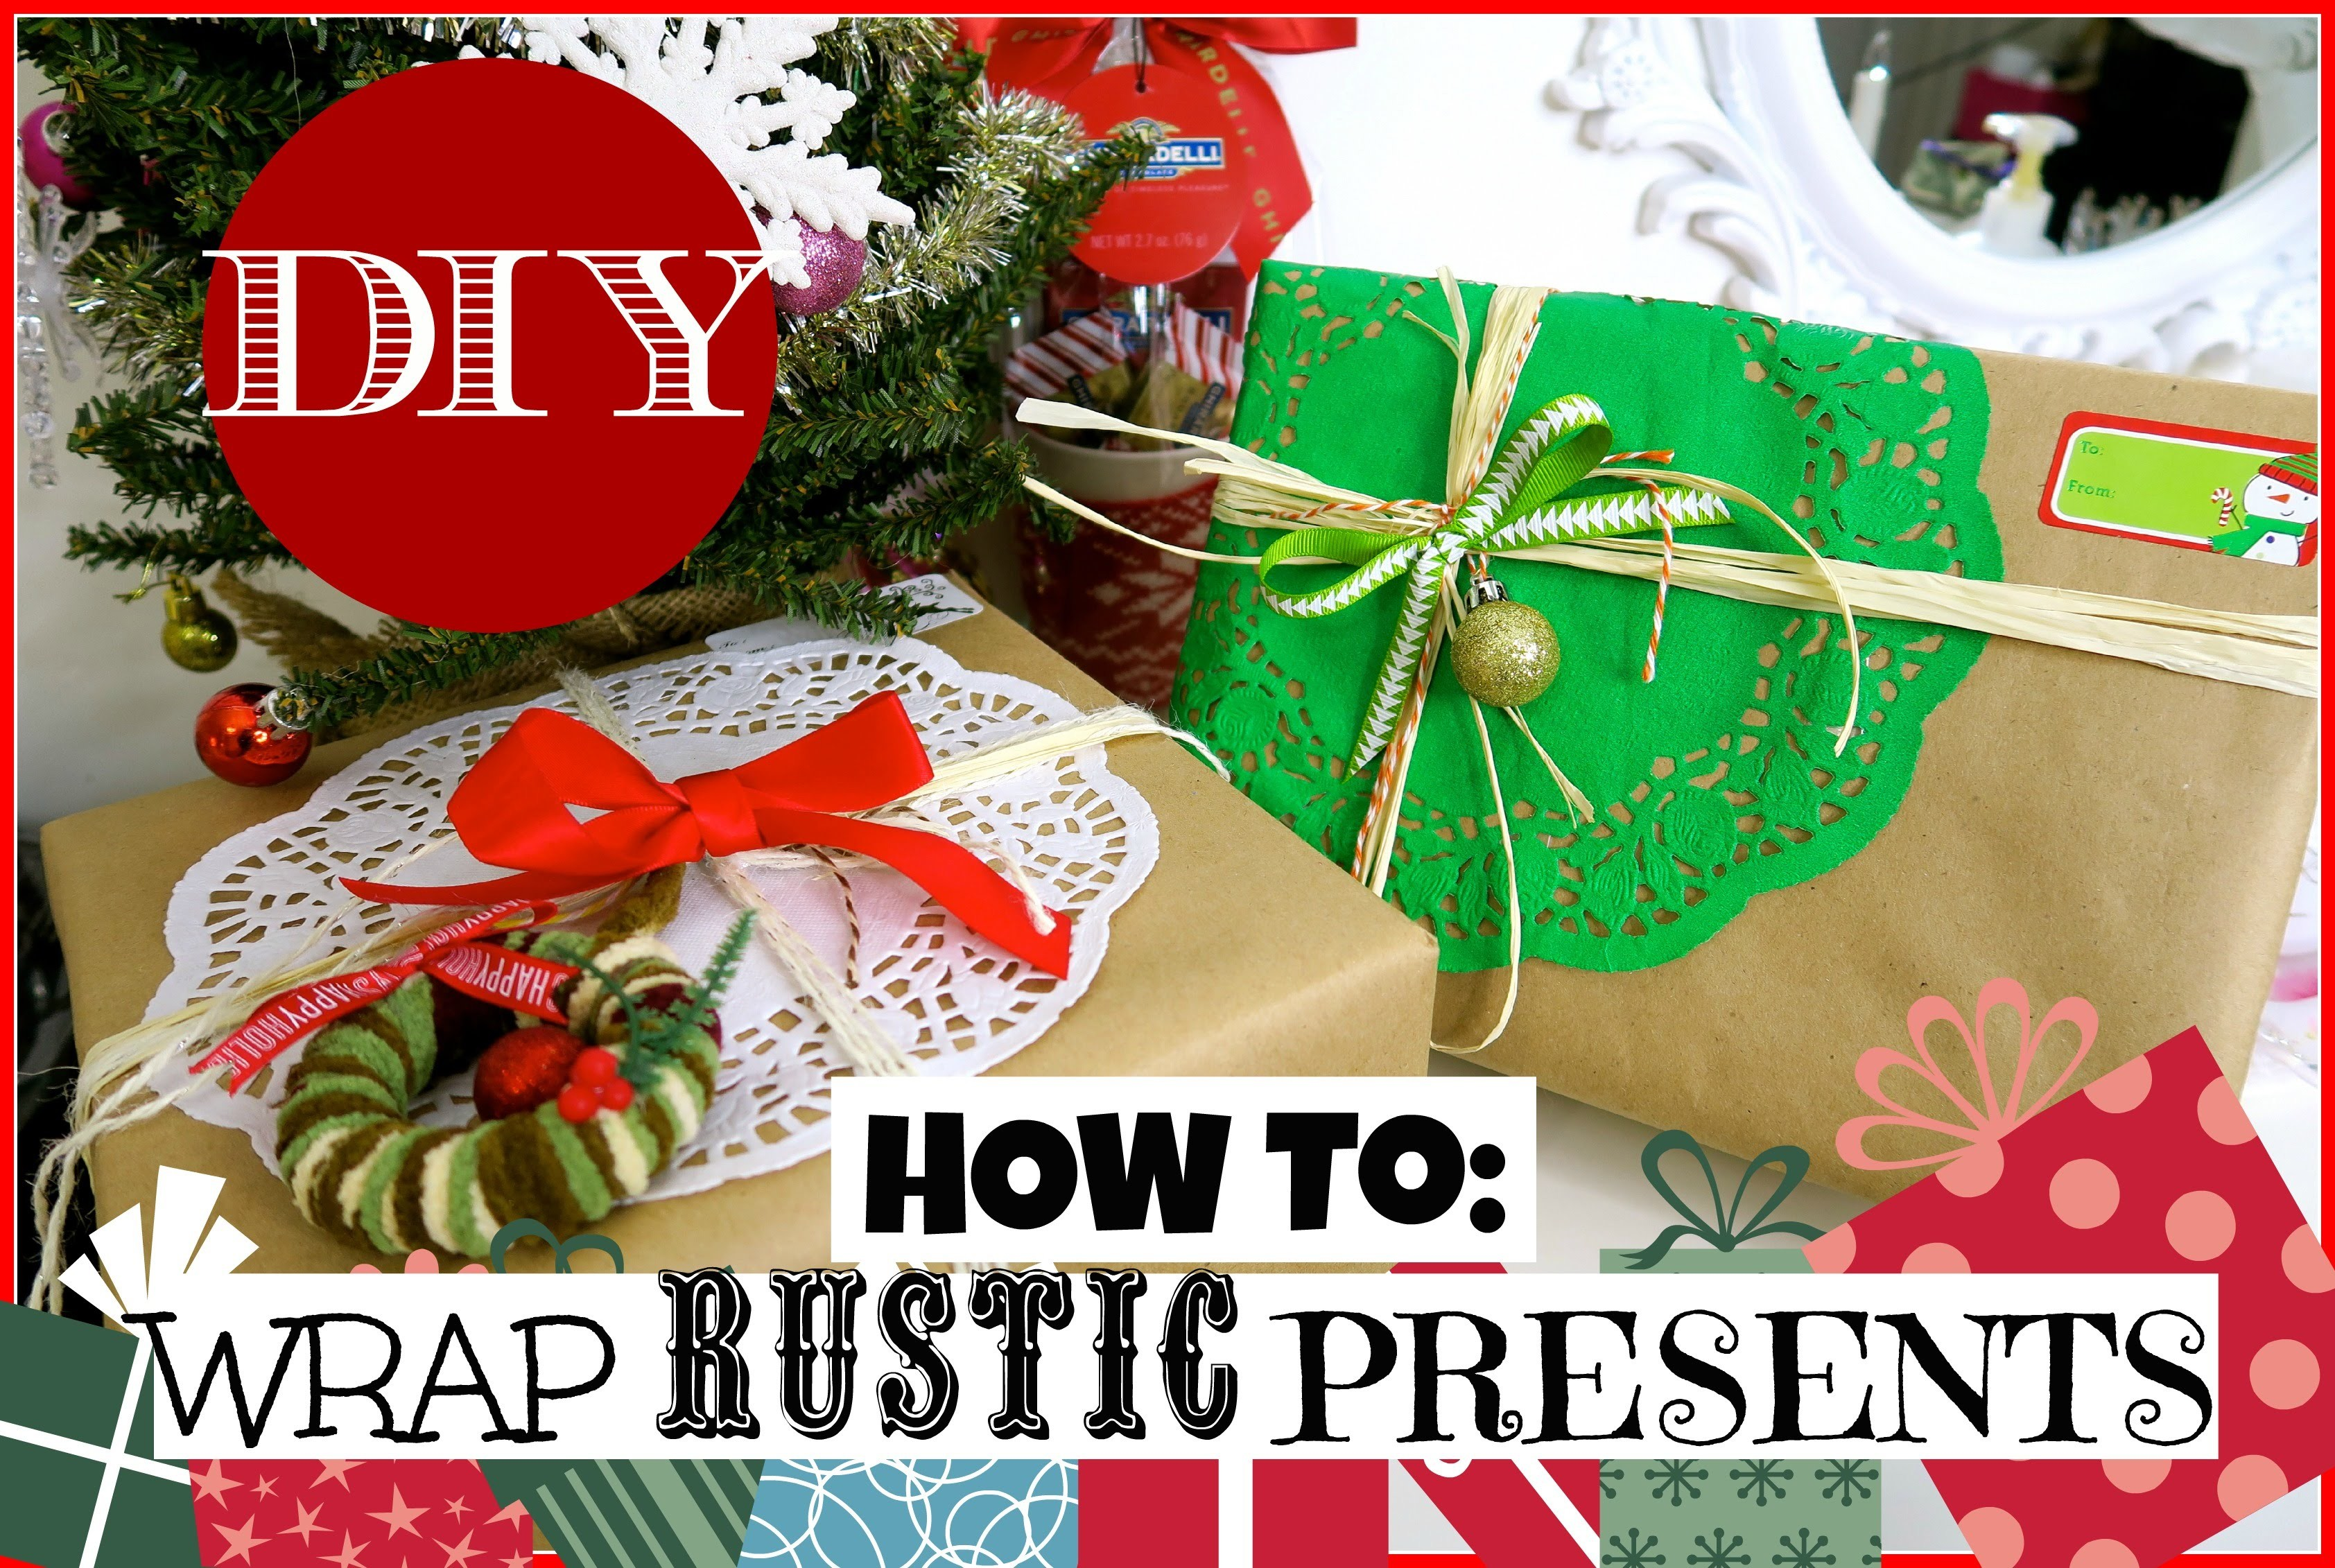 Dollartree How to: Wrap Rustic Christmas Presents